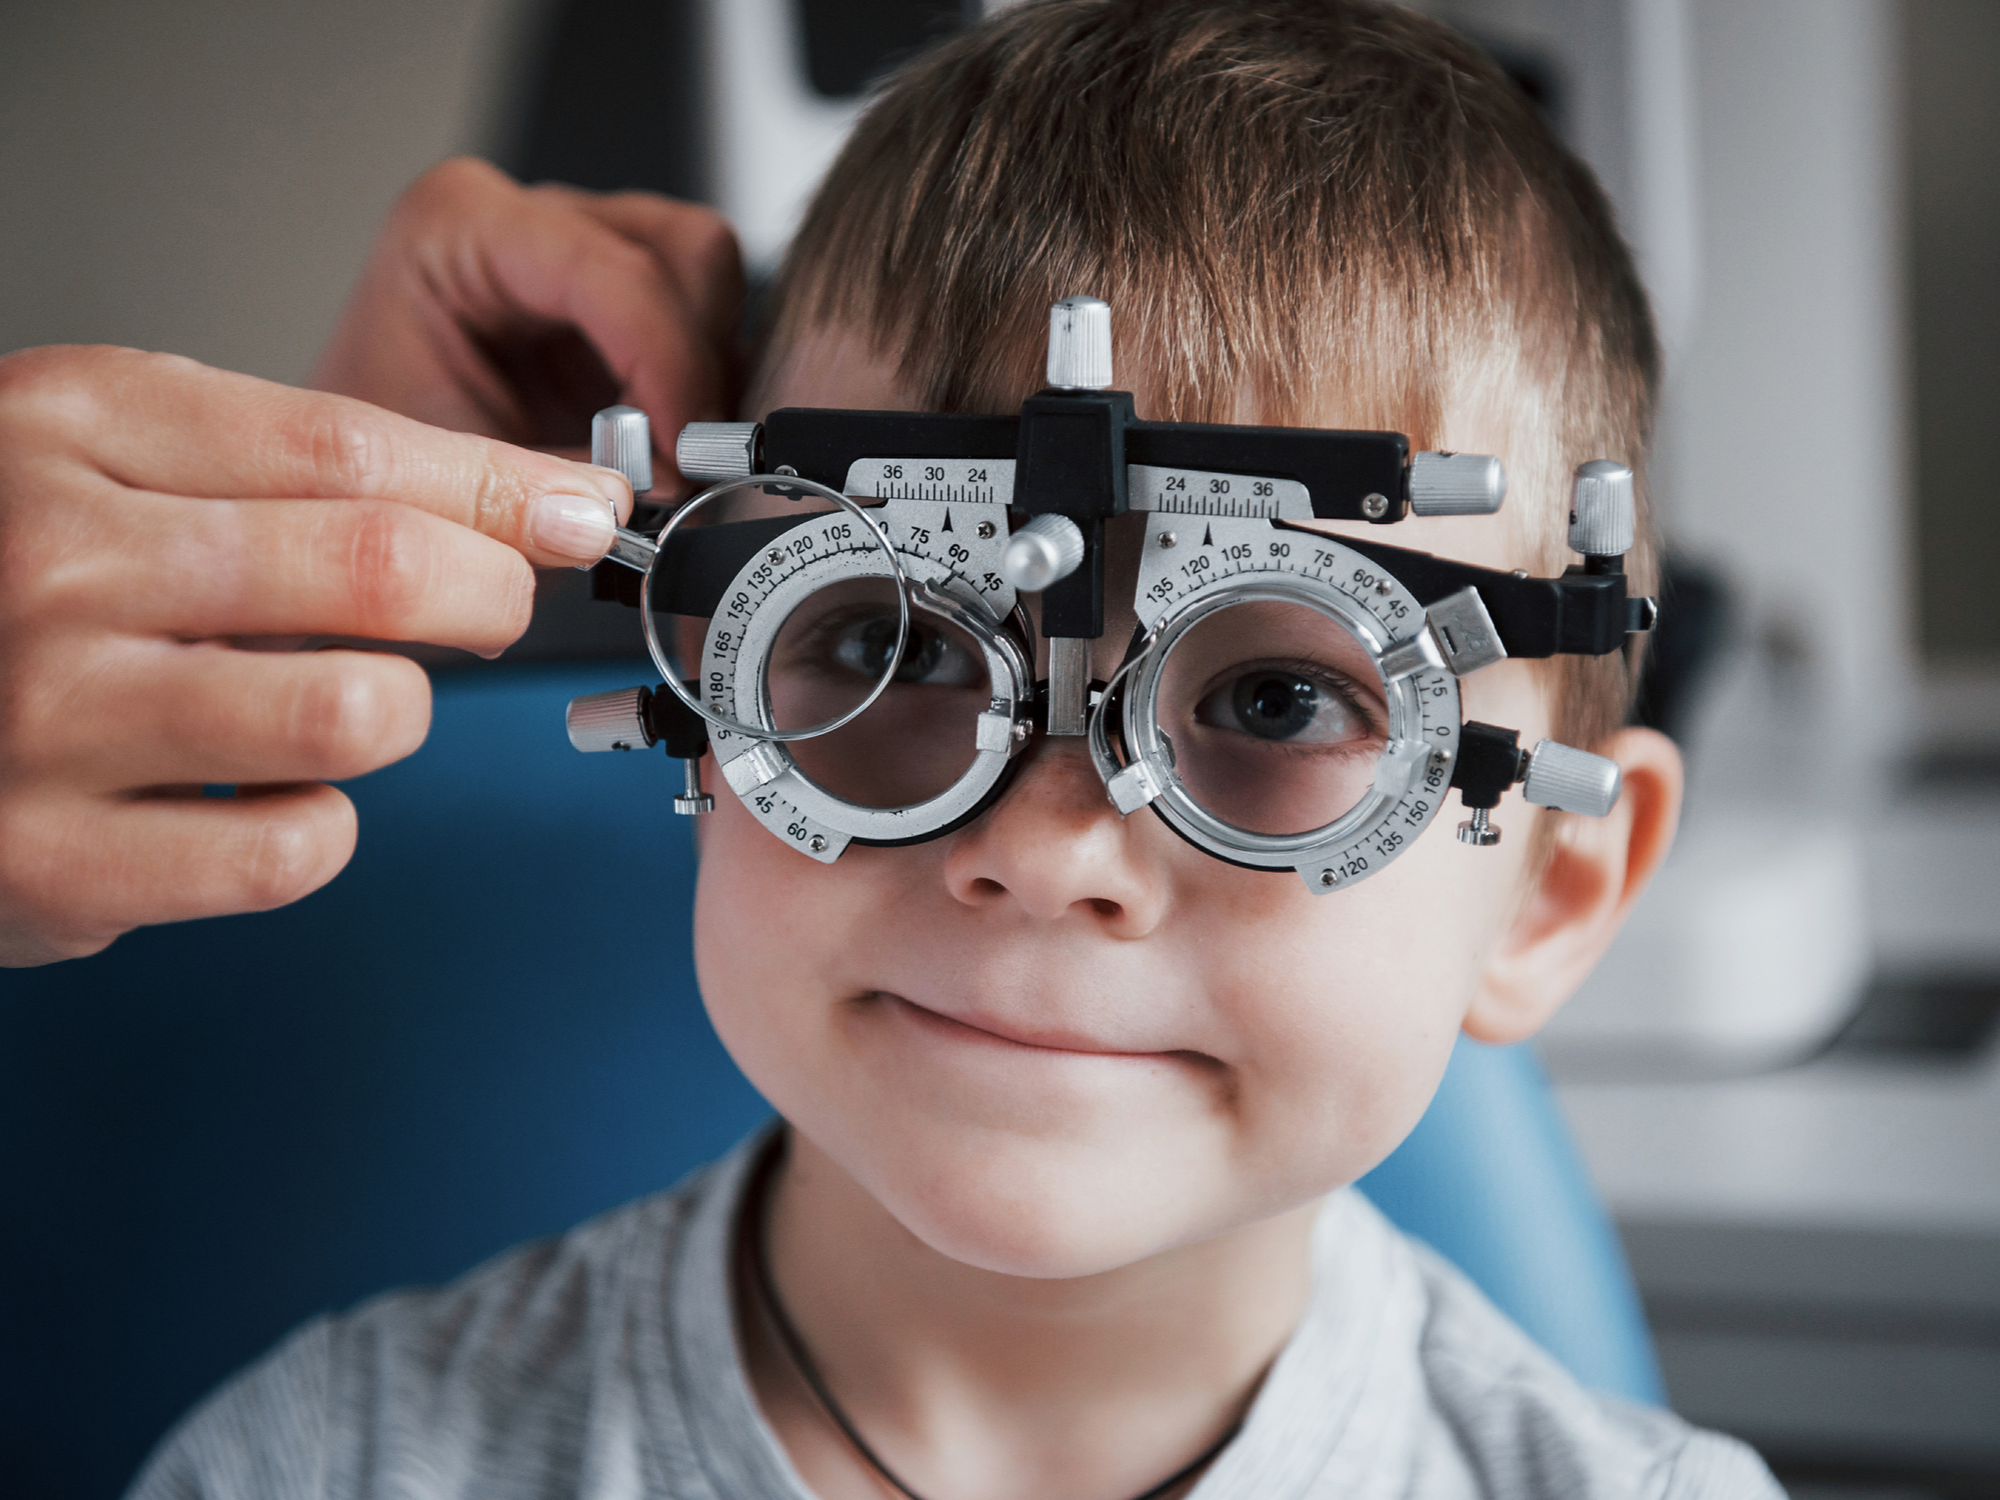 Pediatric Eye Exams: Why It's Important and What to Expect